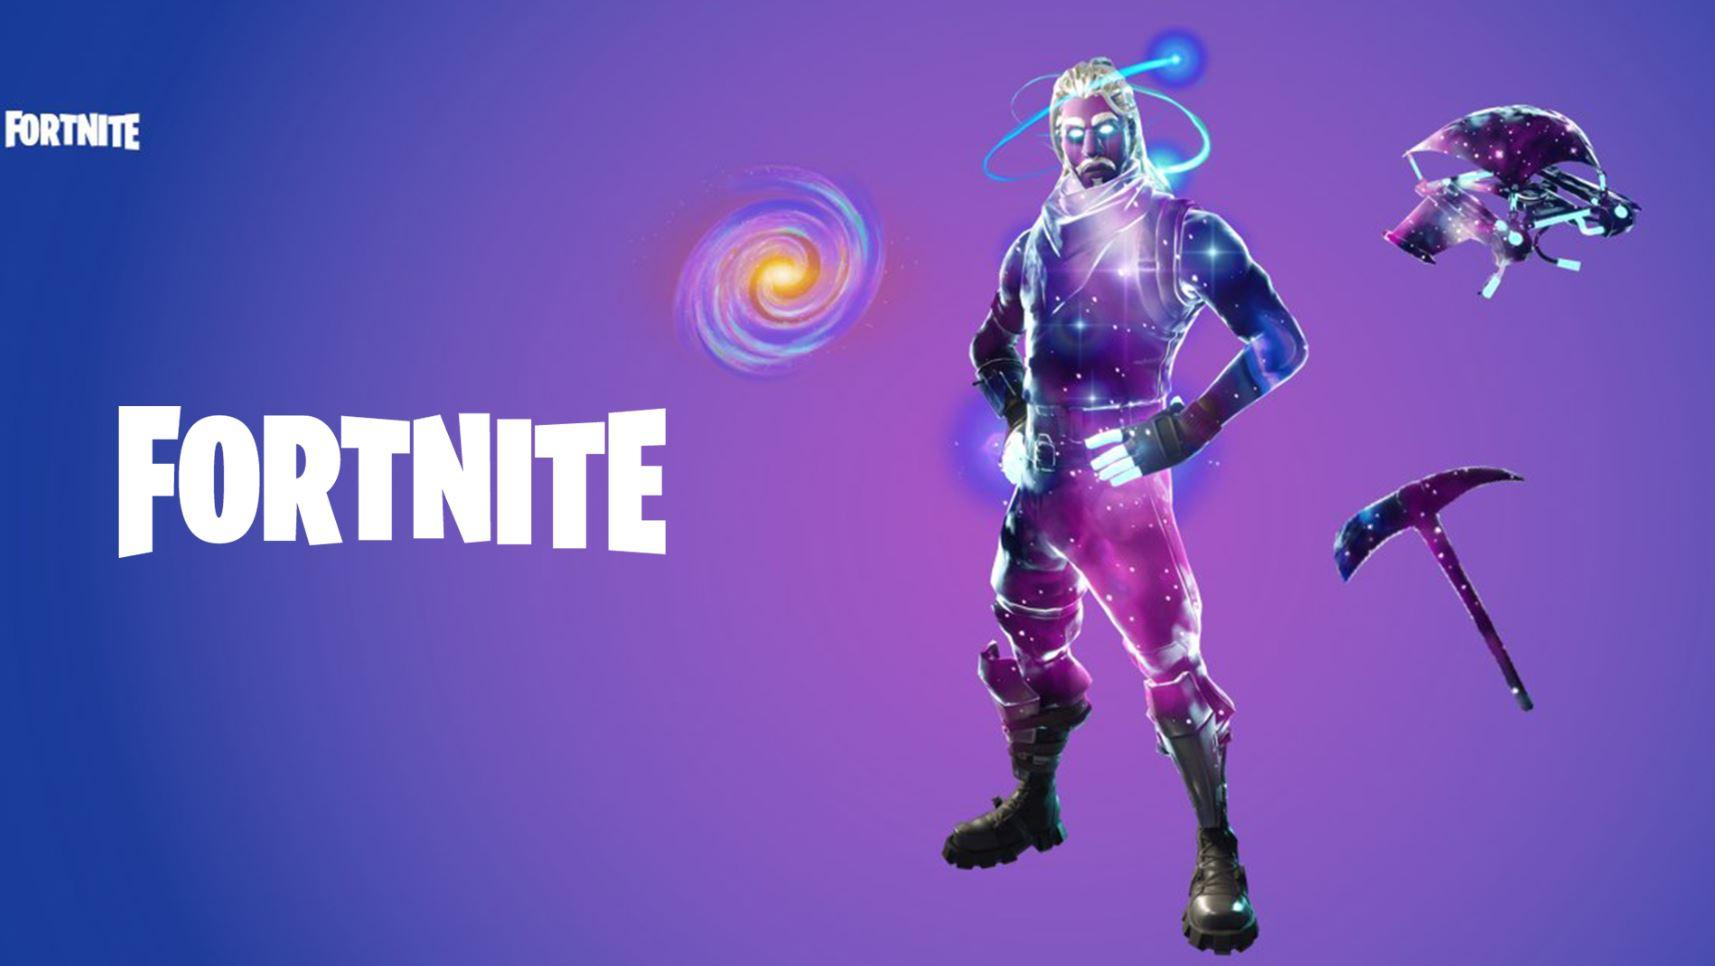 Galaxy Fortnite Wallpapers - Wallpaper Cave